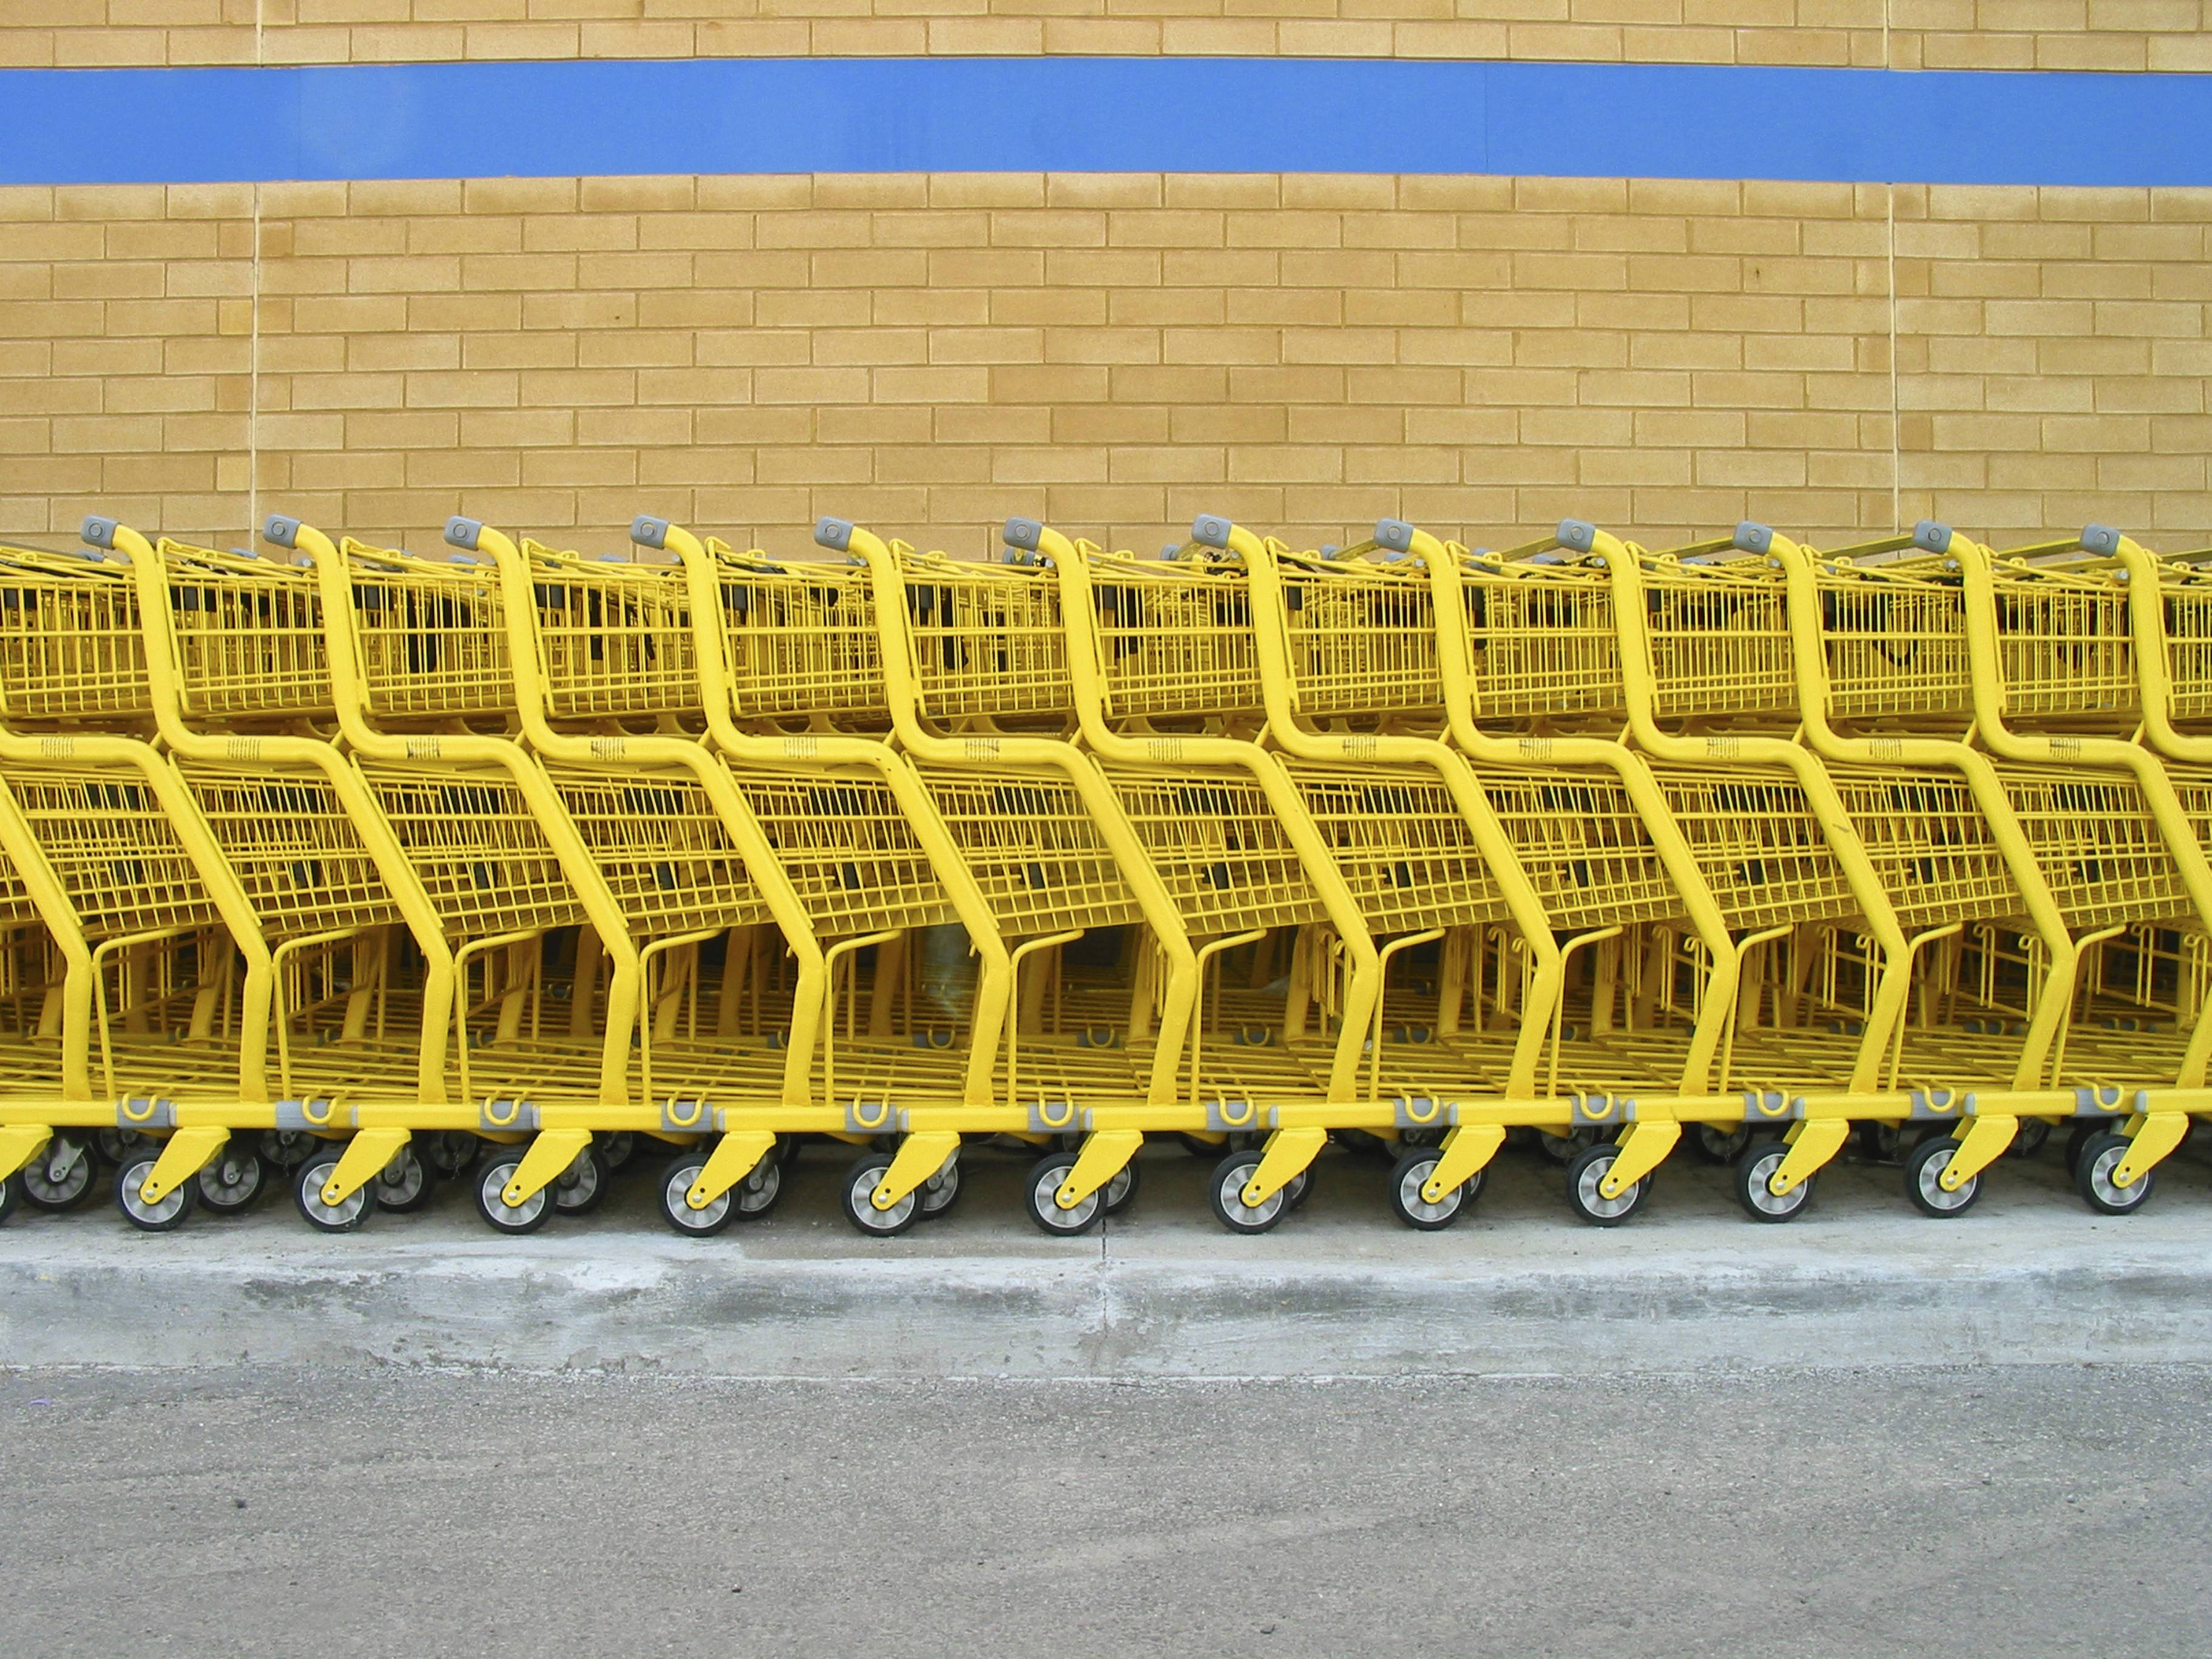 row of shopping carts- category expertise for brand and retail market shares